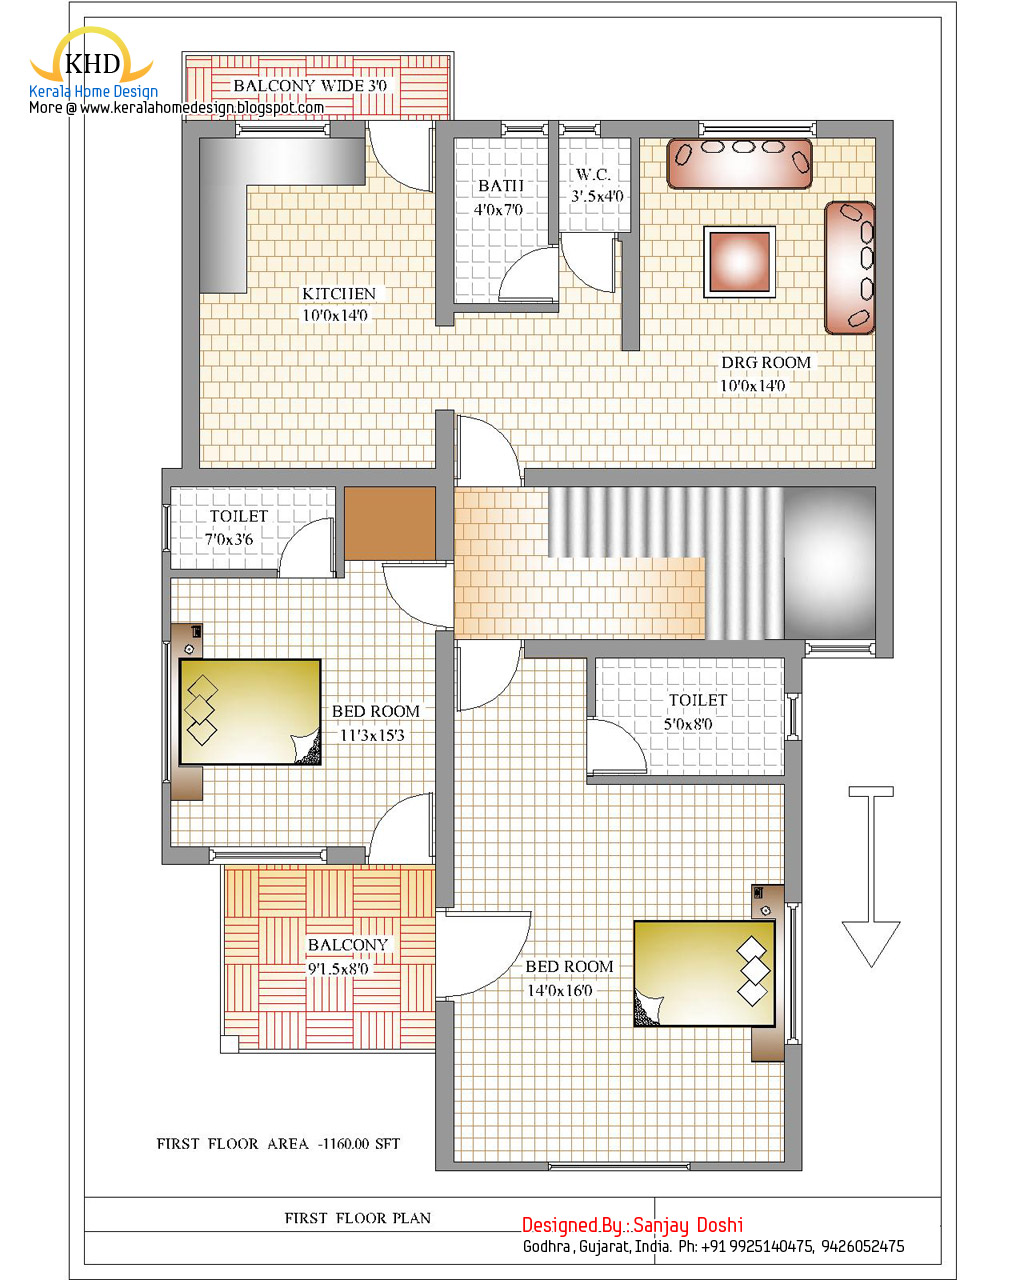 Duplex house plan and elevation 2310 sq ft kerala home design and floor plans Free house map design images